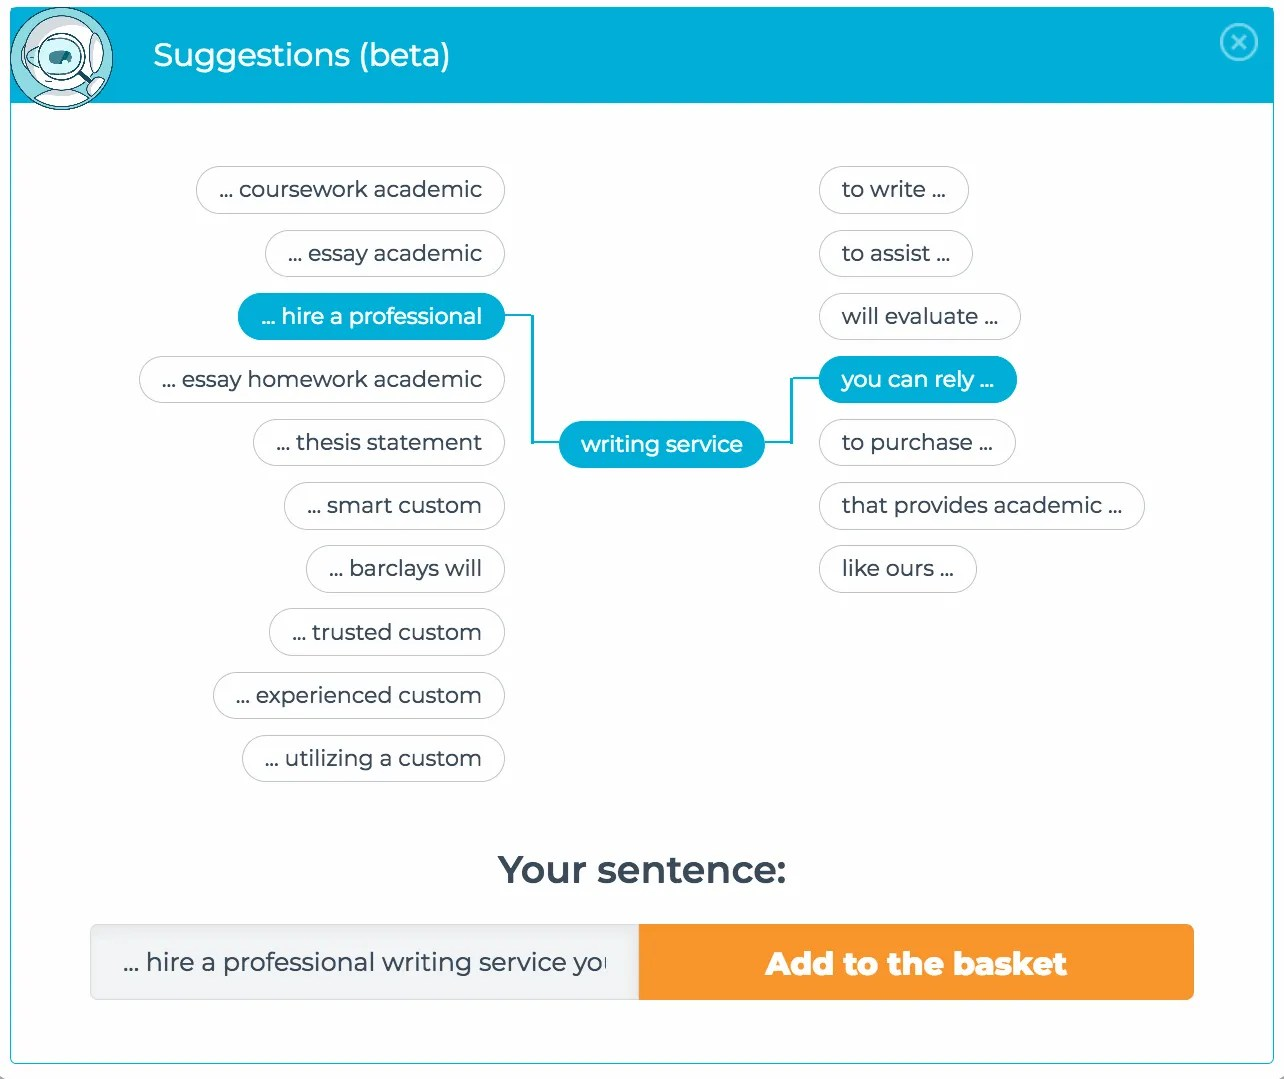 full sentences and phrases that you can add to create optimized content